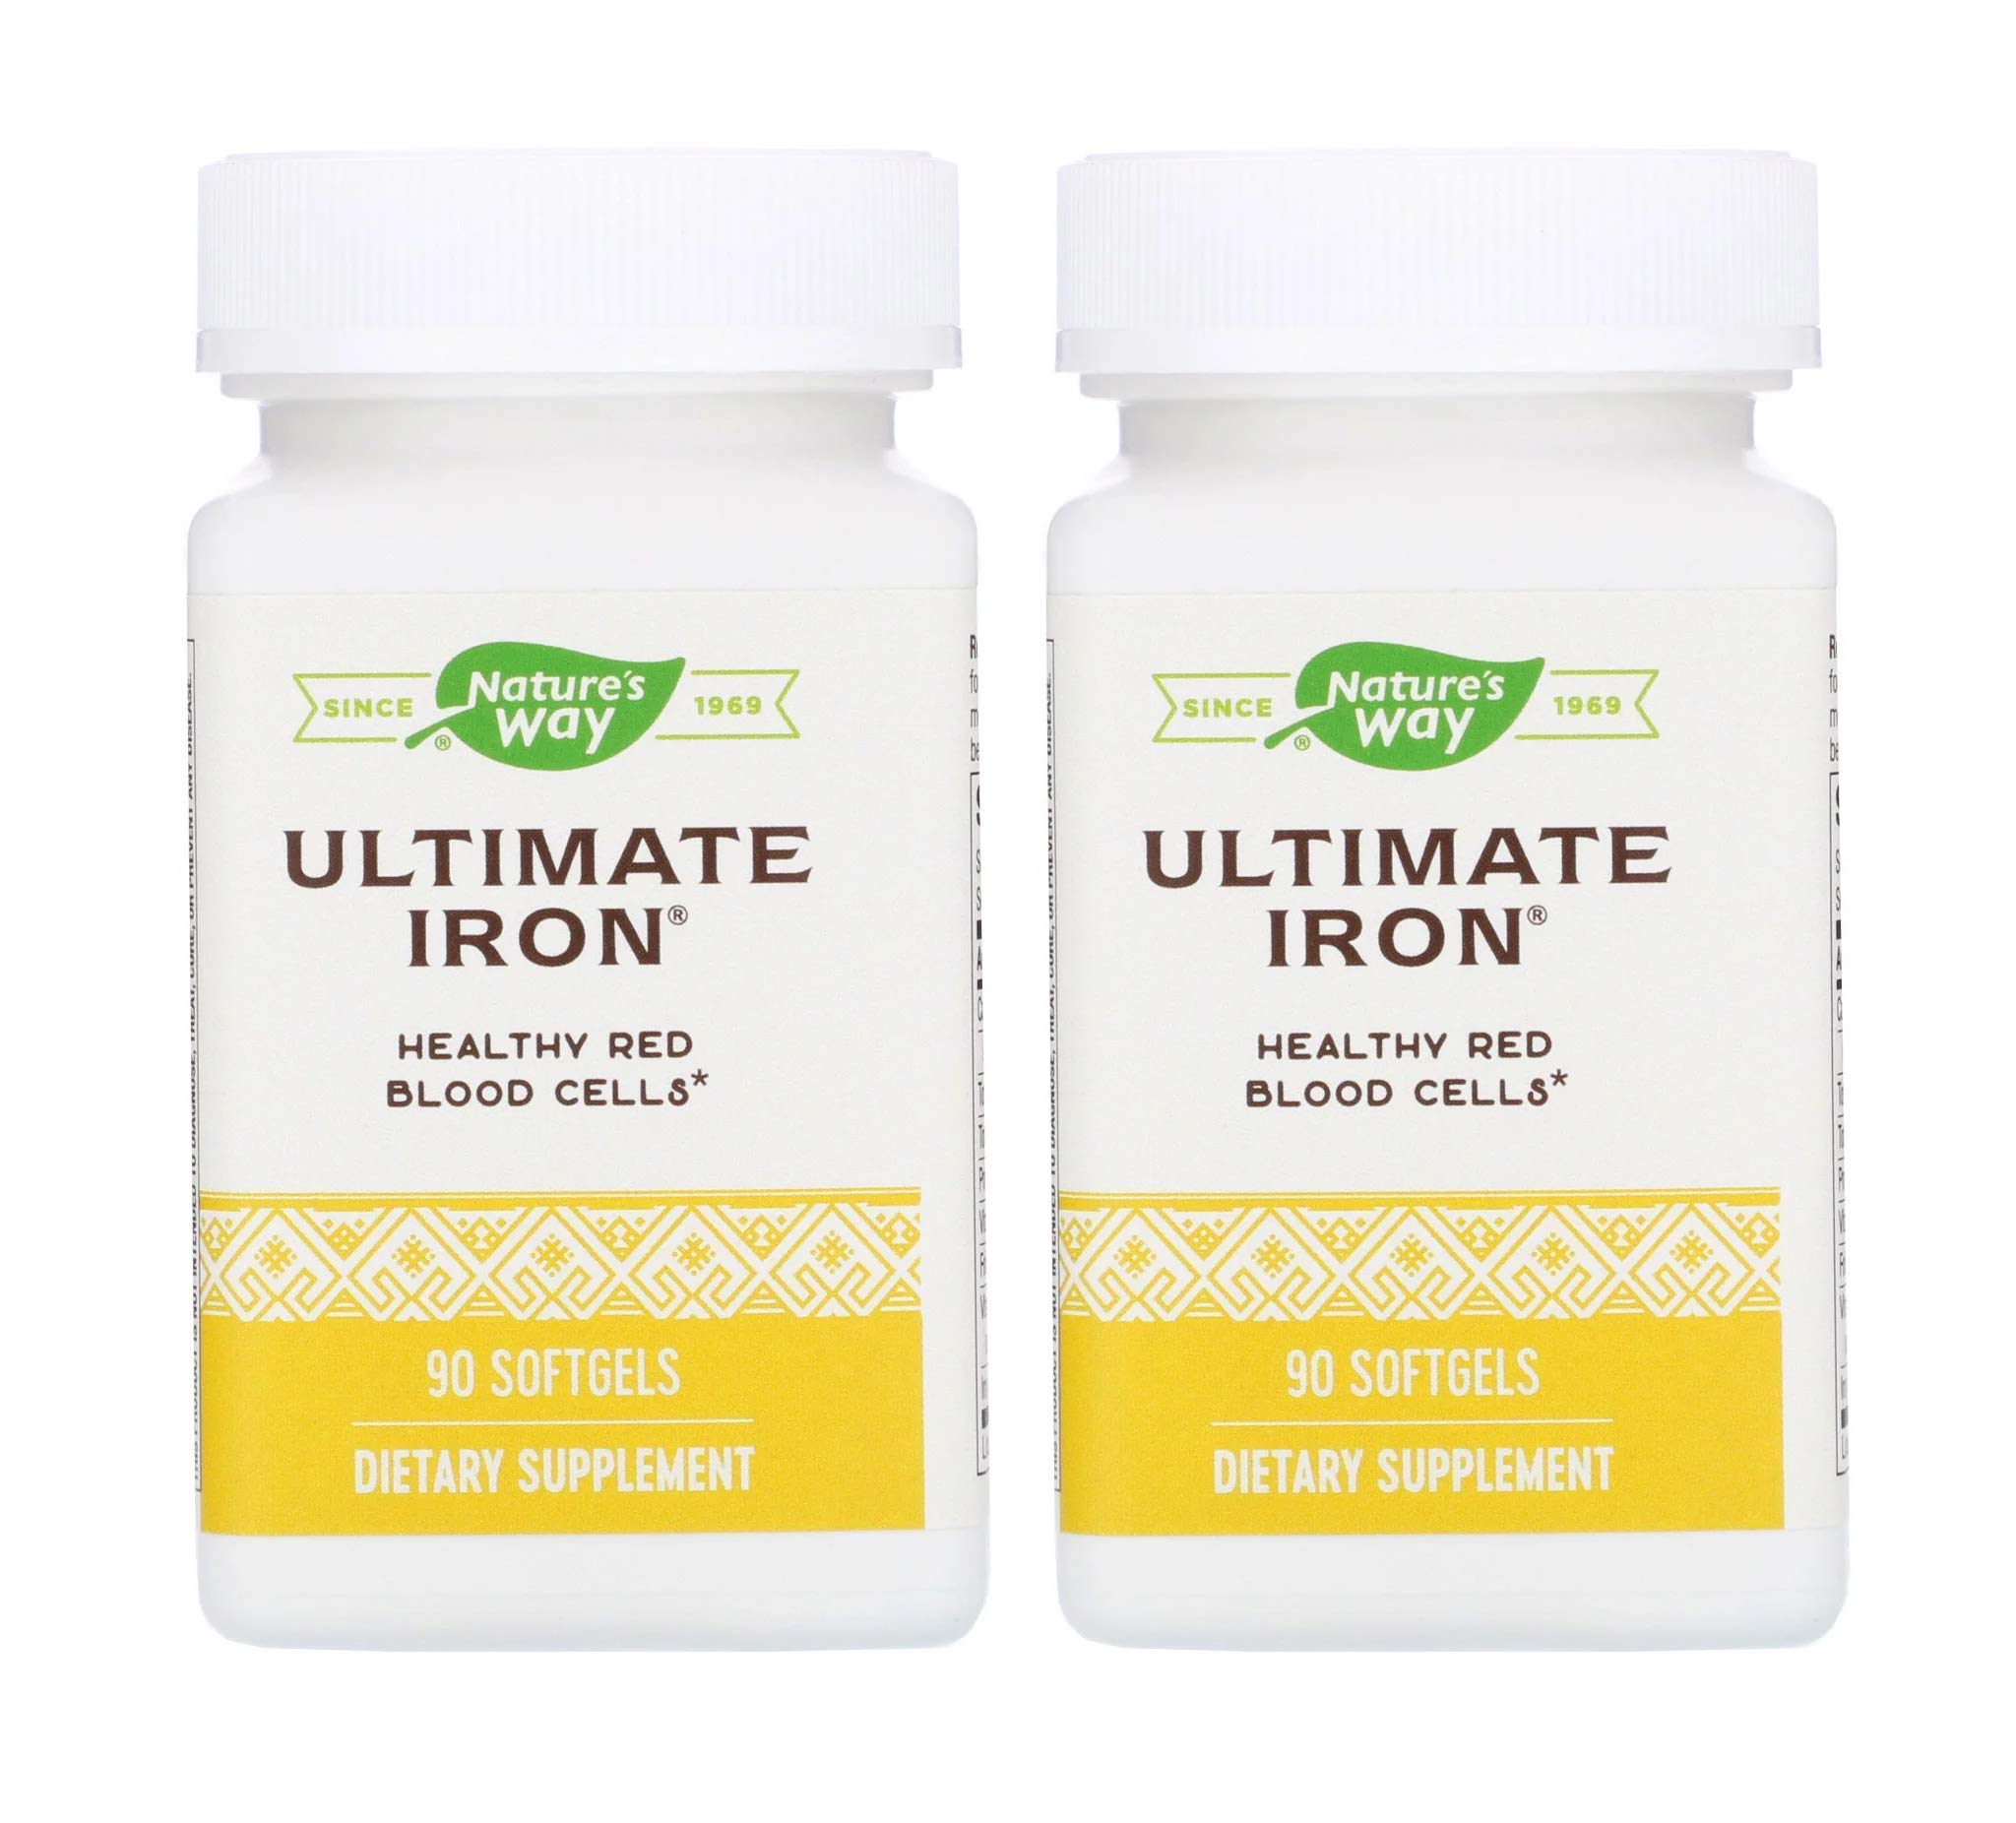 Nature's Way Ultimate Iron Healthy Red Blood Cells (90 Softgels) Pack of 2